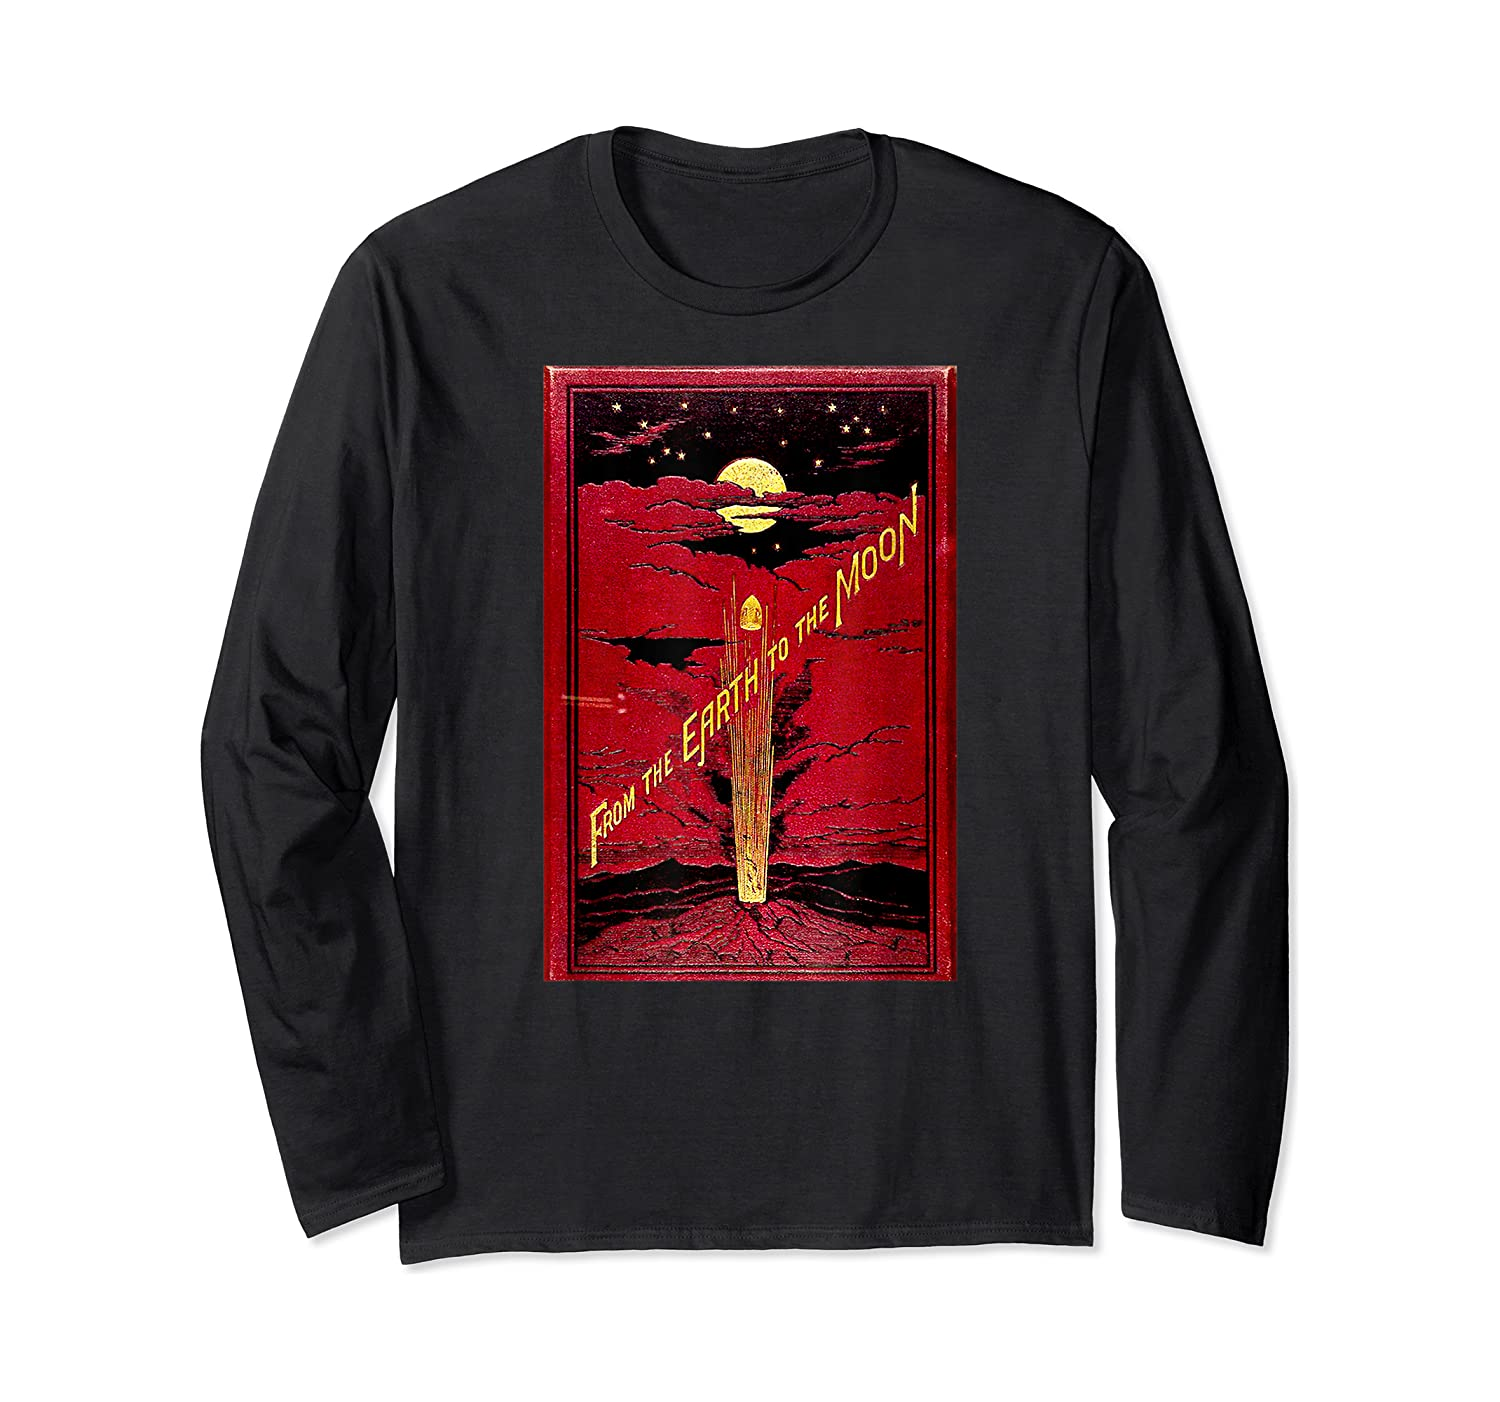 From The Earth To The Moon Jules Verne Book Cover Design Shirts Long Sleeve T-shirt